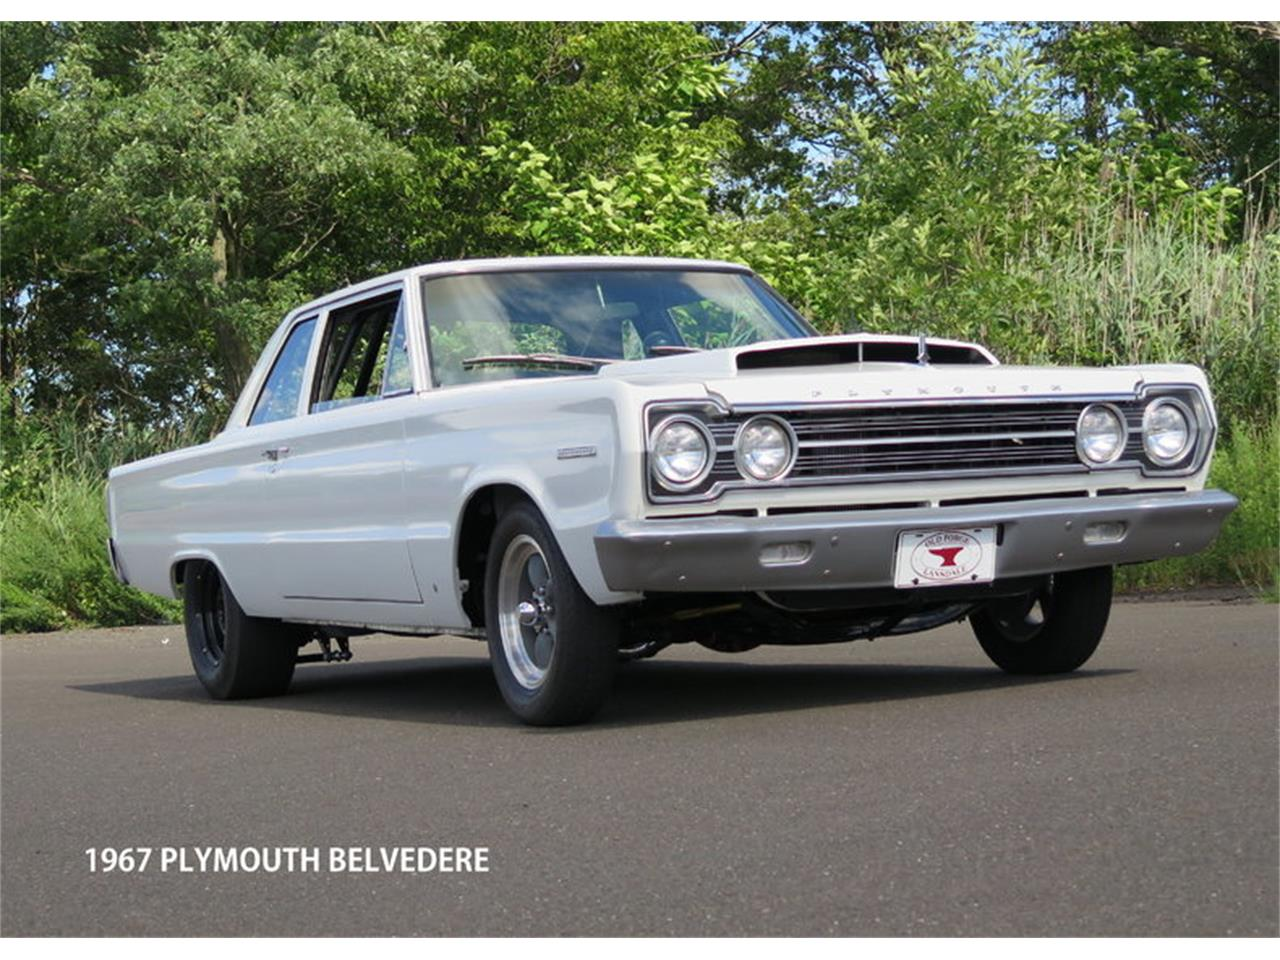 Plymouth Belvedere #21